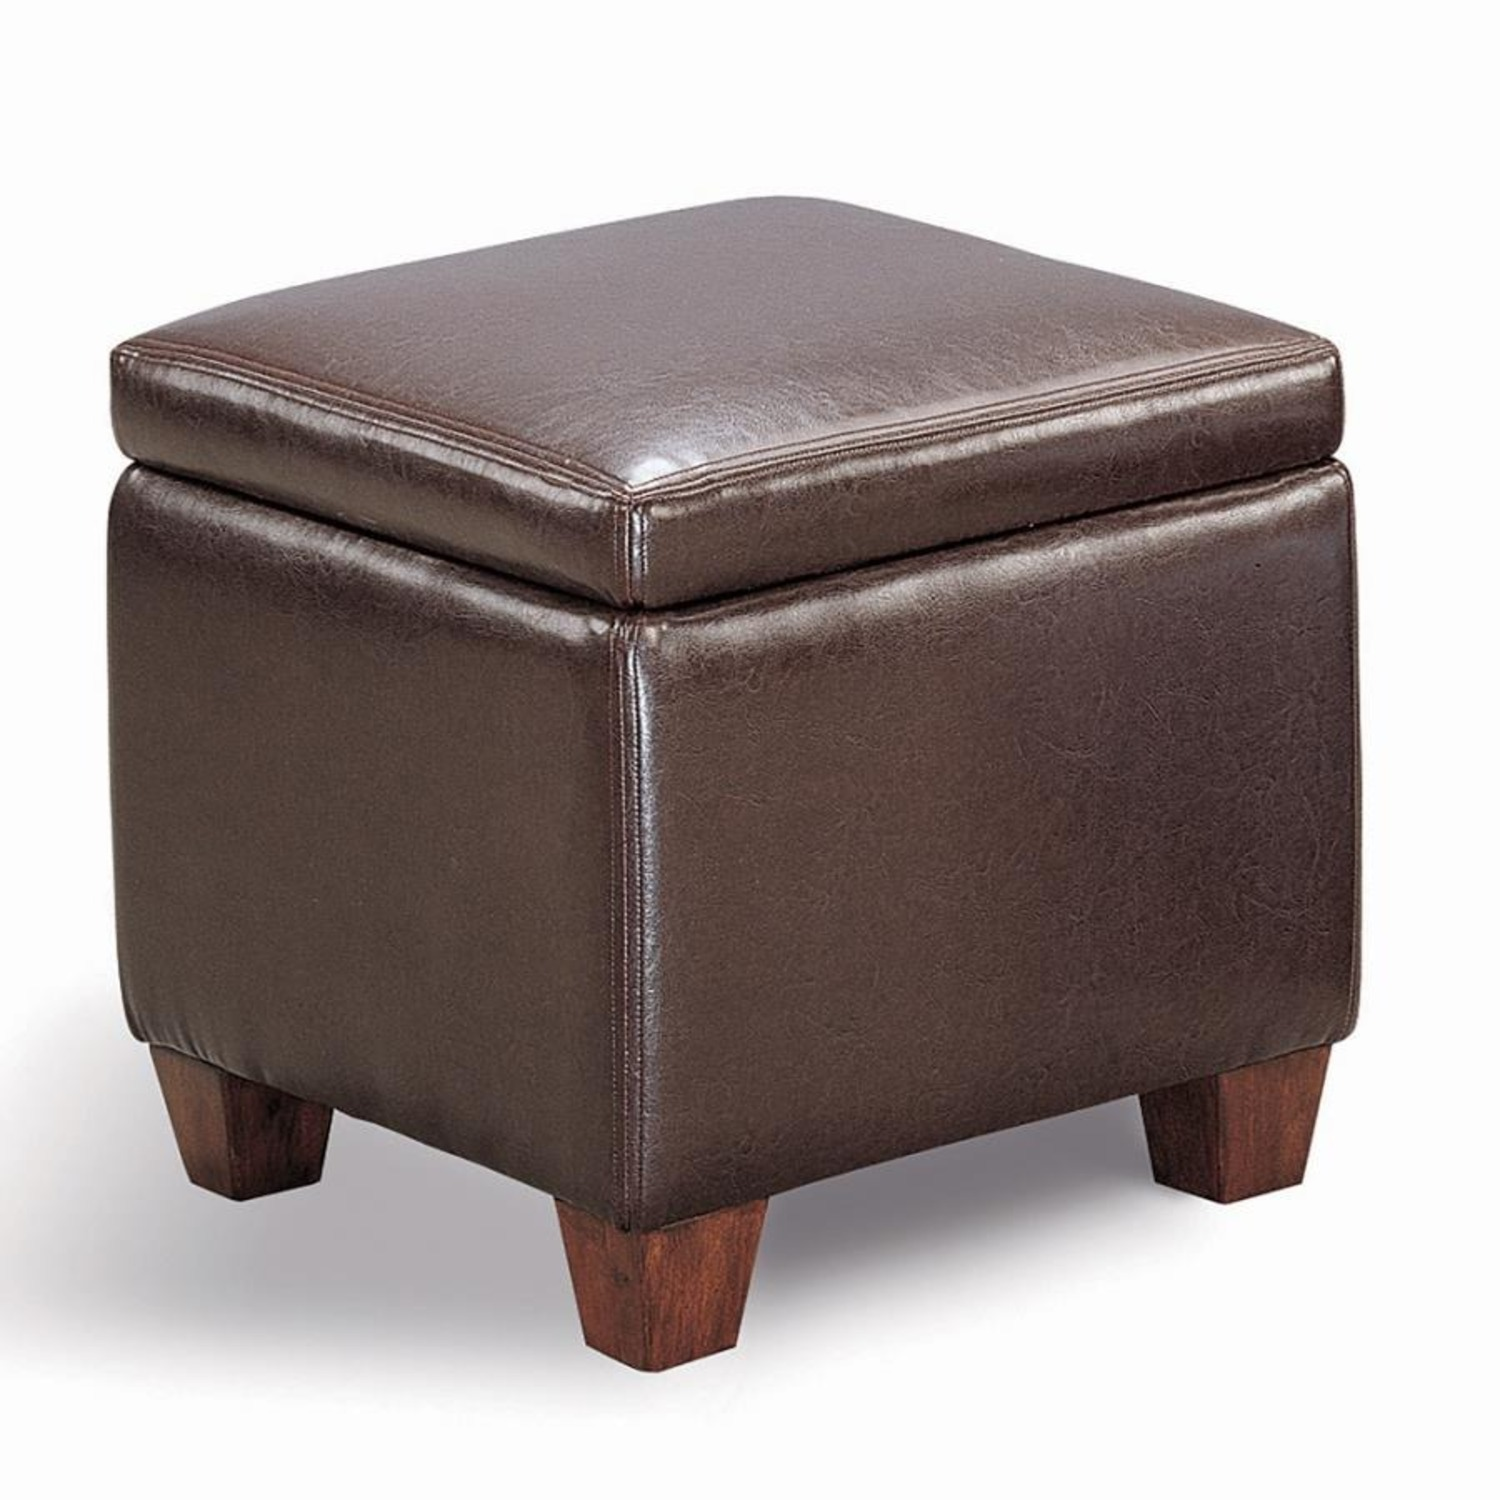 Ottoman In Cube-Shaped Dark Brown Finish - image-0